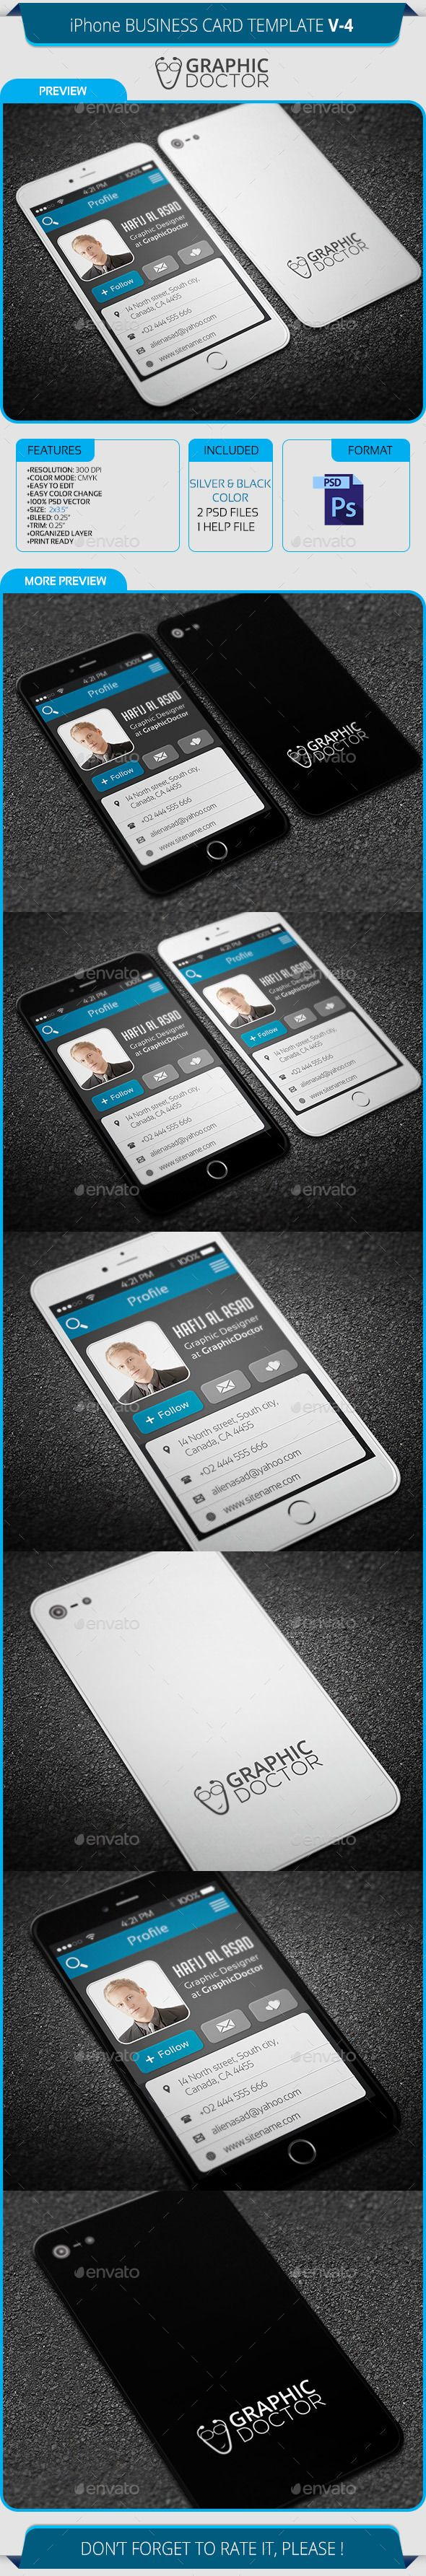 iPhone Business Card Template V-4 | Card templates, Business cards ...